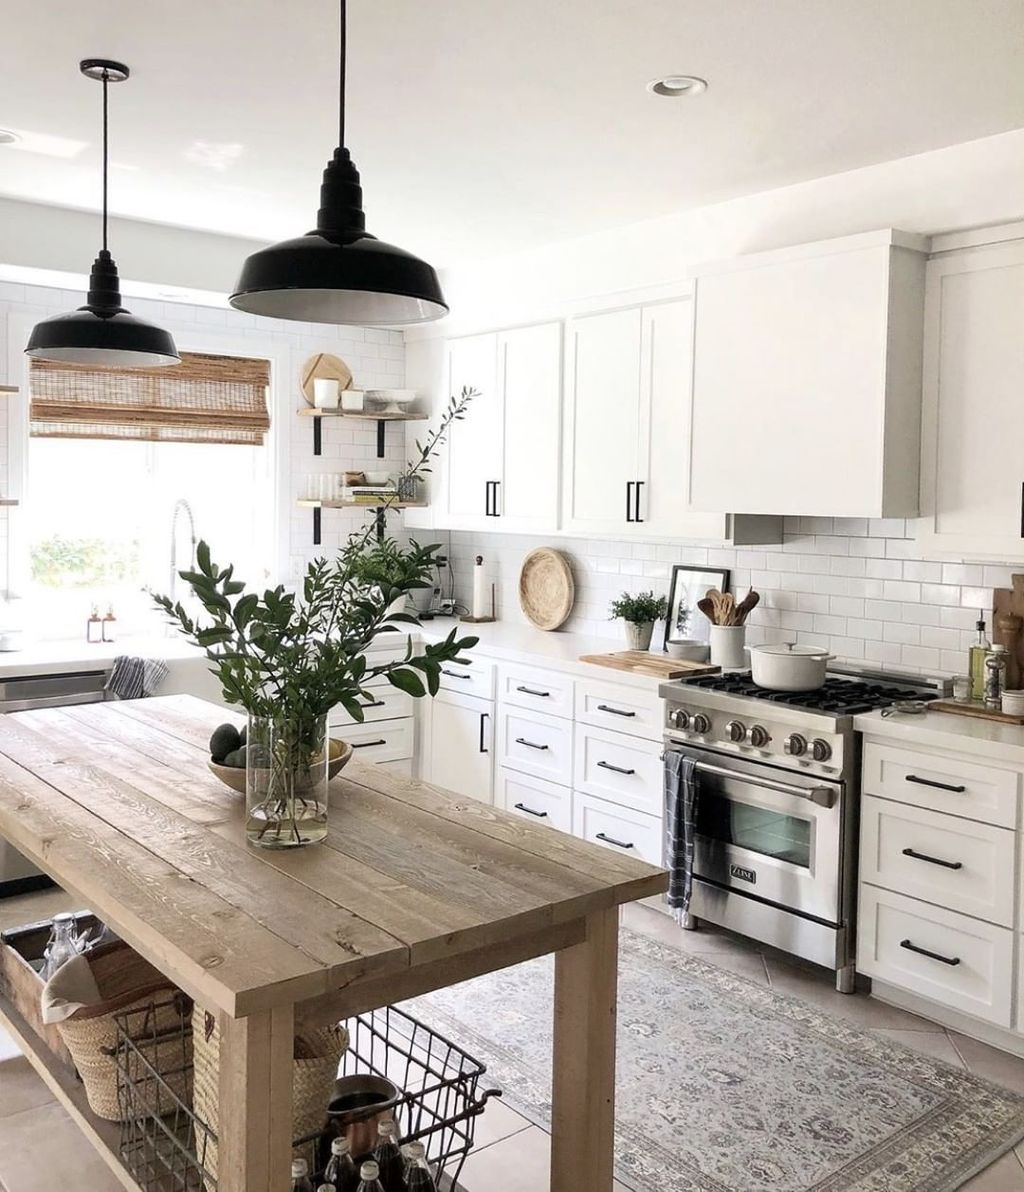 The Best Ideas To Decorate Interior Design With Farmhouse Style 16